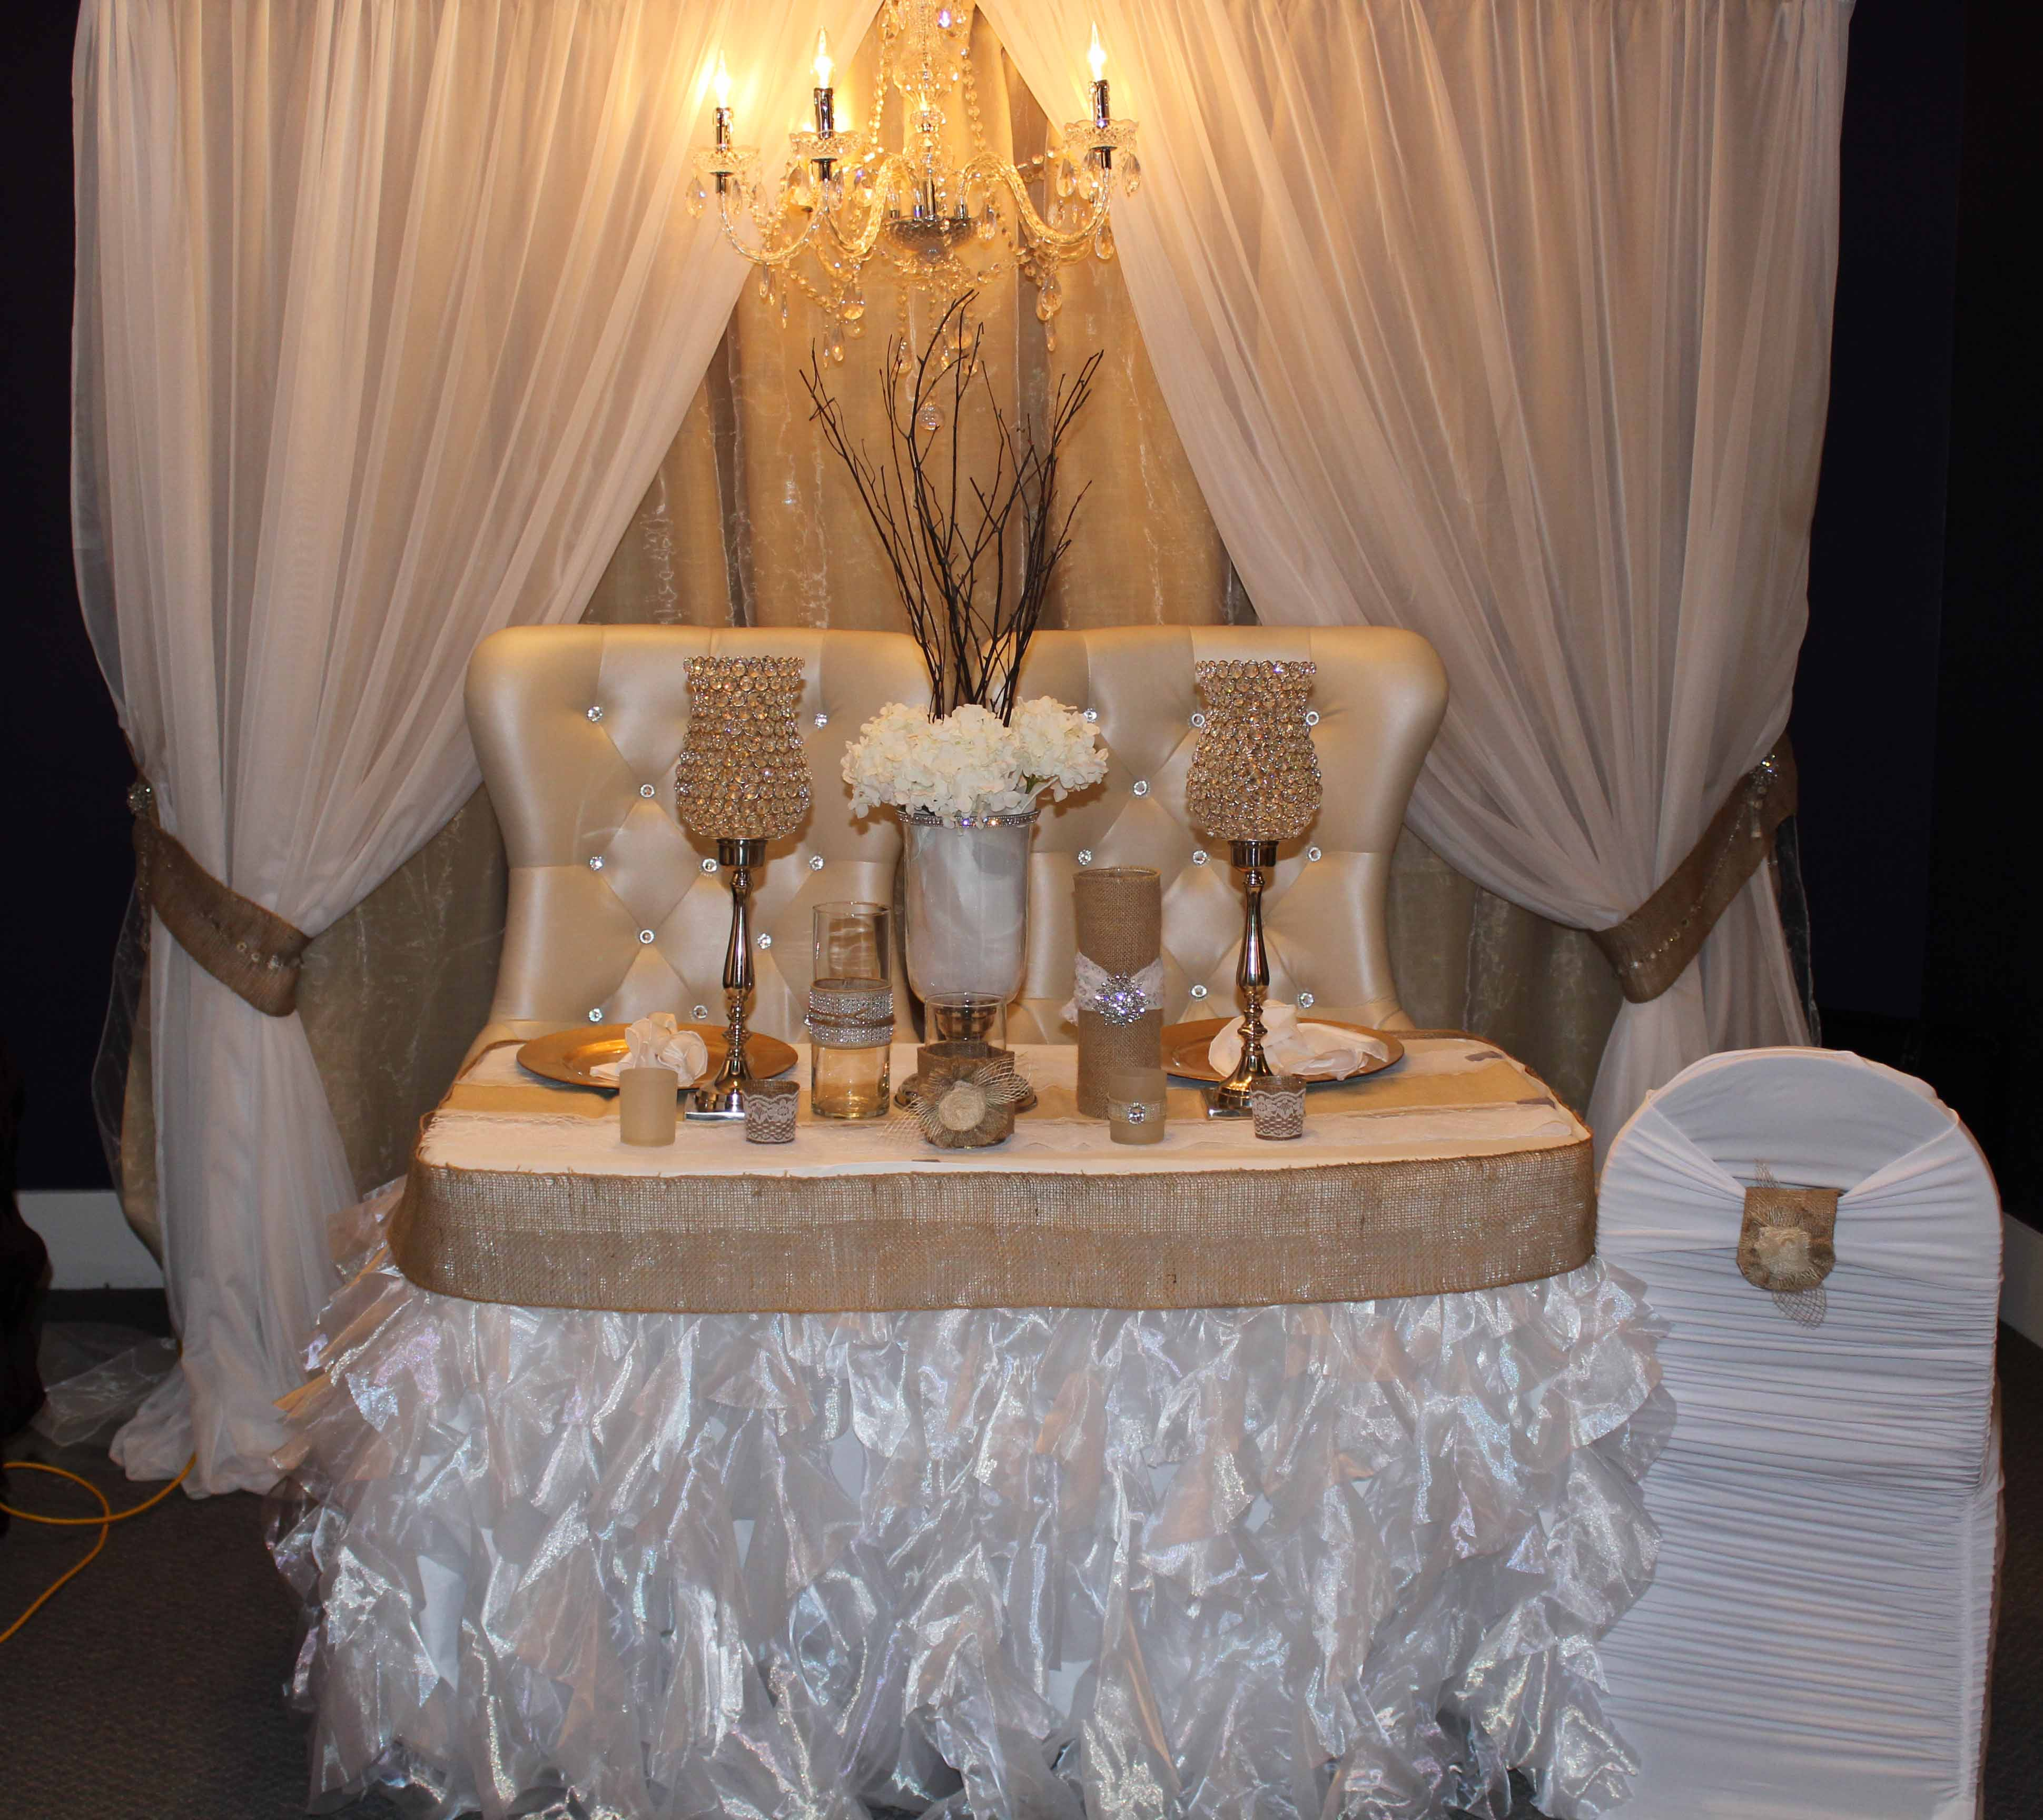 Our inspirational gallery exquisite events and wedding decor for Marriage decorative items